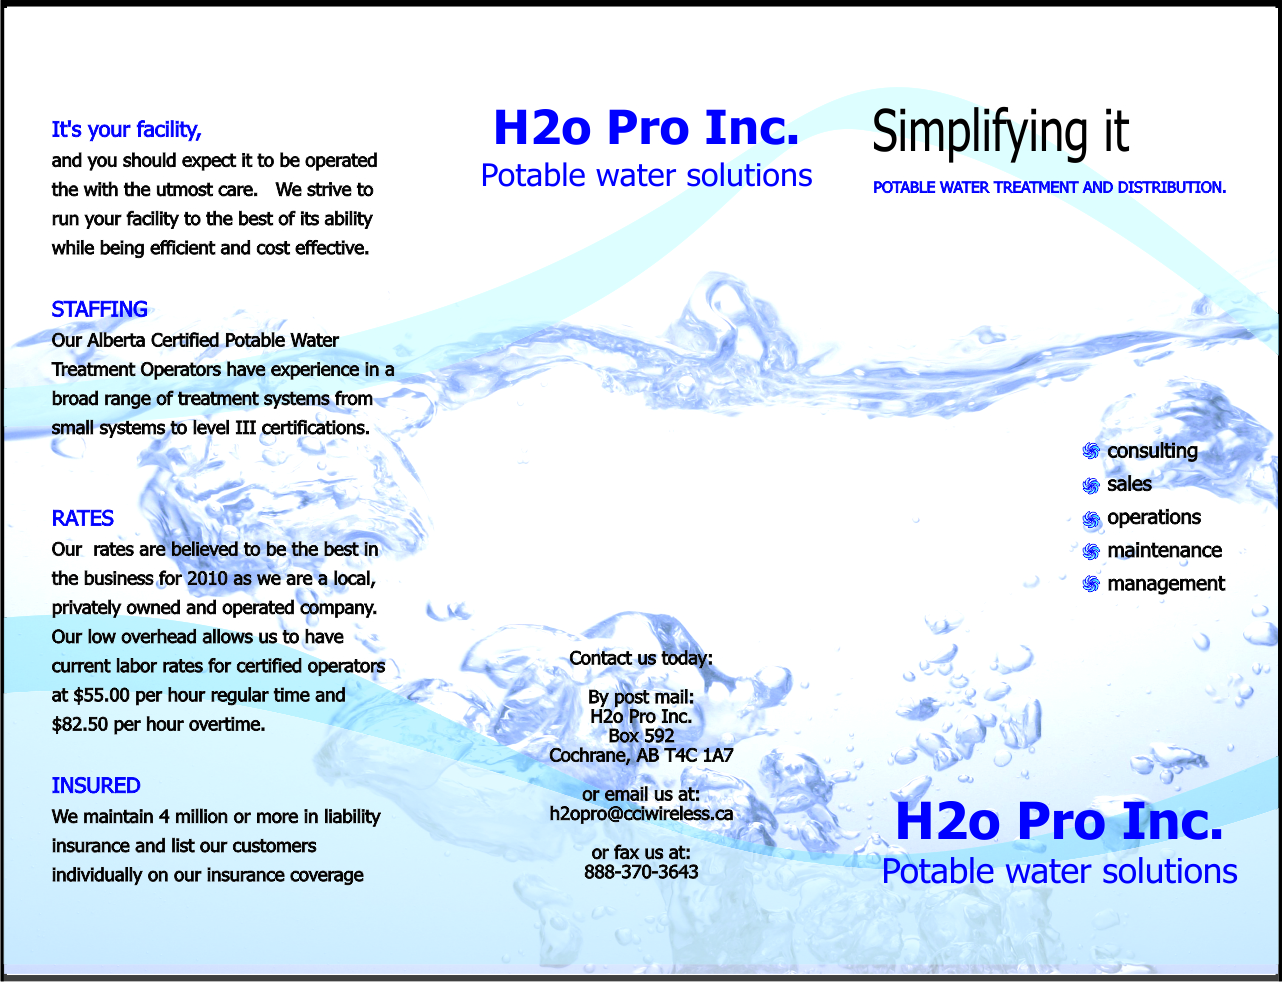 H2o Pro Inc. - Front